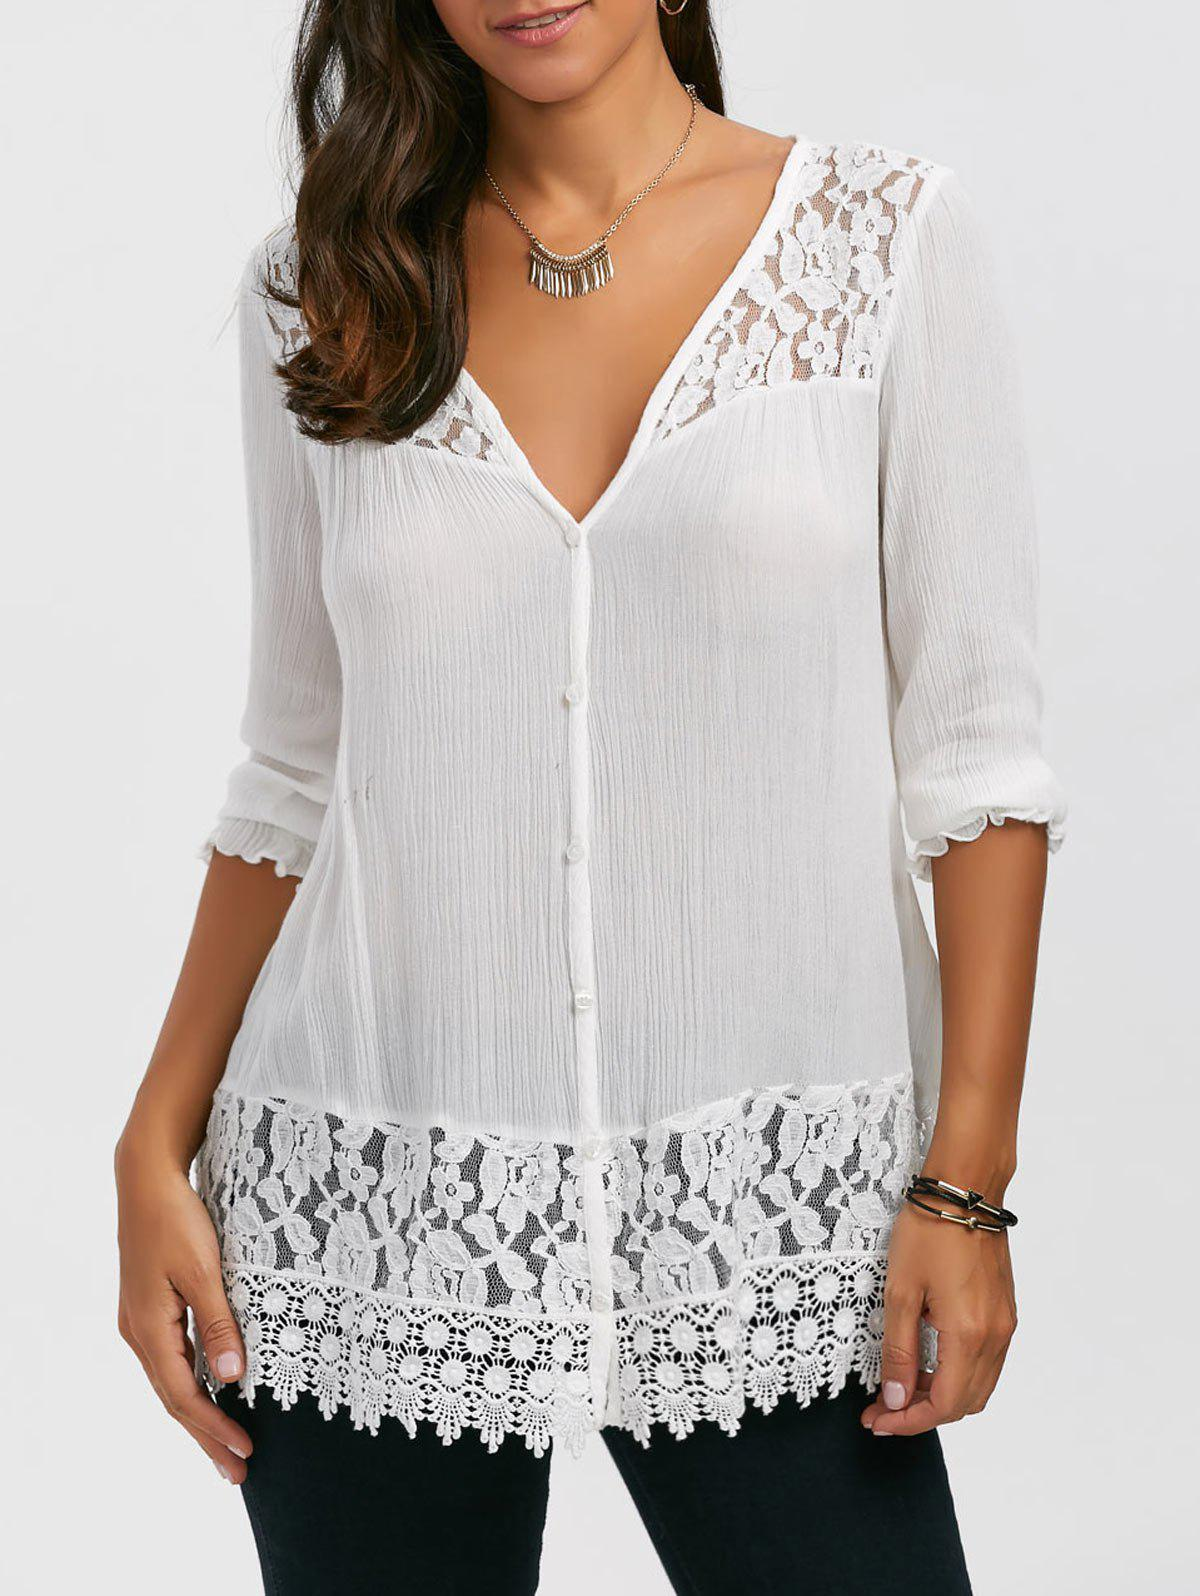 Lace Panel Button Up BlouseWOMEN<br><br>Size: 2XL; Color: WHITE; Occasion: Casual; Style: Casual; Material: Rayon; Shirt Length: Long; Sleeve Length: Three Quarter; Collar: V-Neck; Pattern Type: Floral; Season: Fall,Spring,Summer; Weight: 0.3000kg; Package Contents: 1 x Blouse;